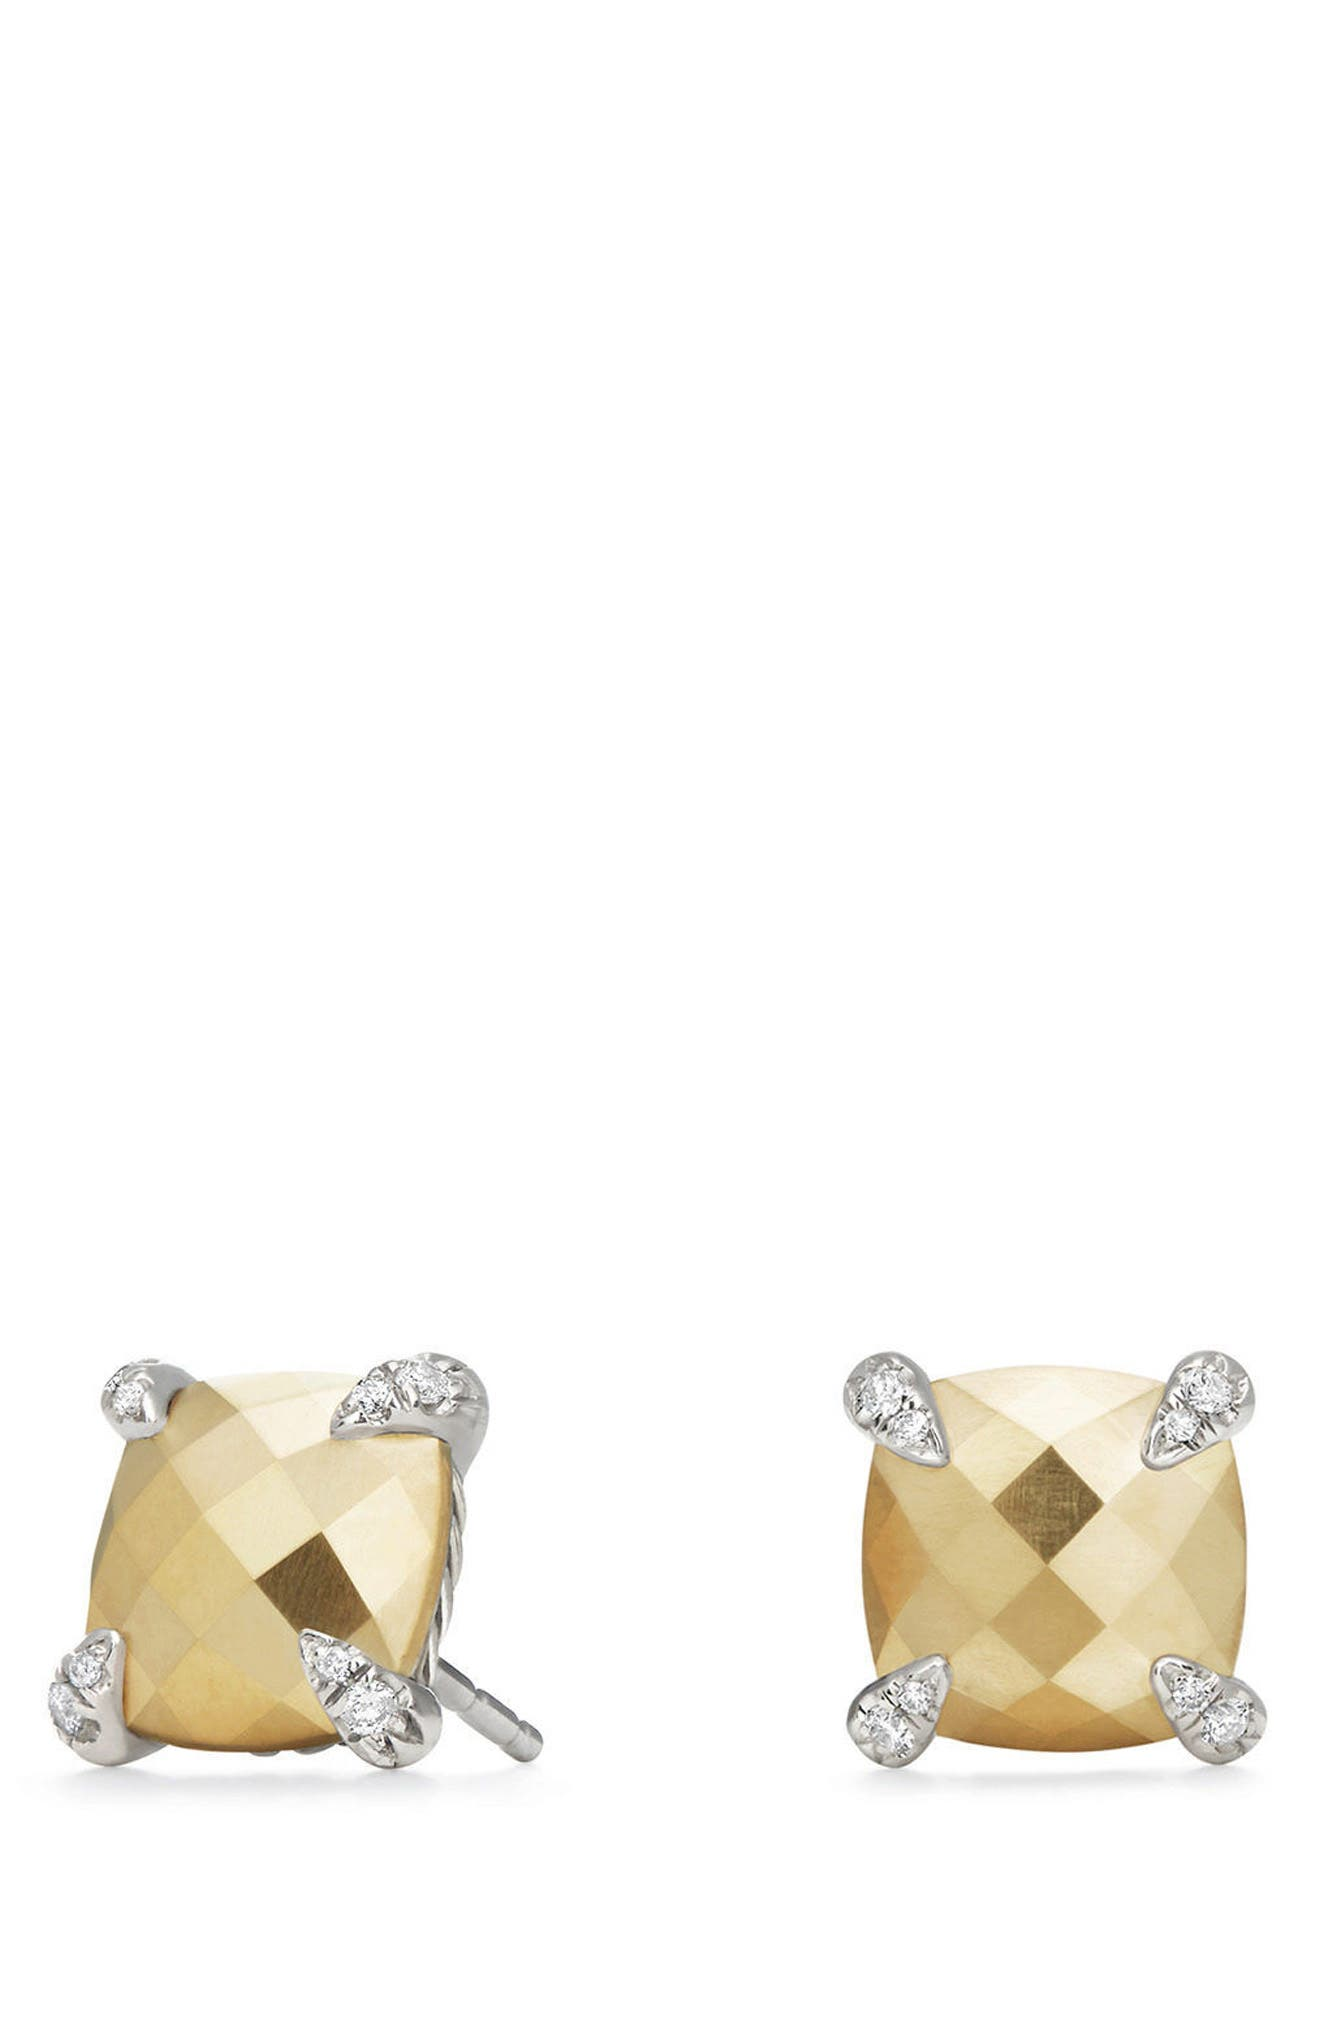 David Yurman Châtelaine Earrings with Diamonds